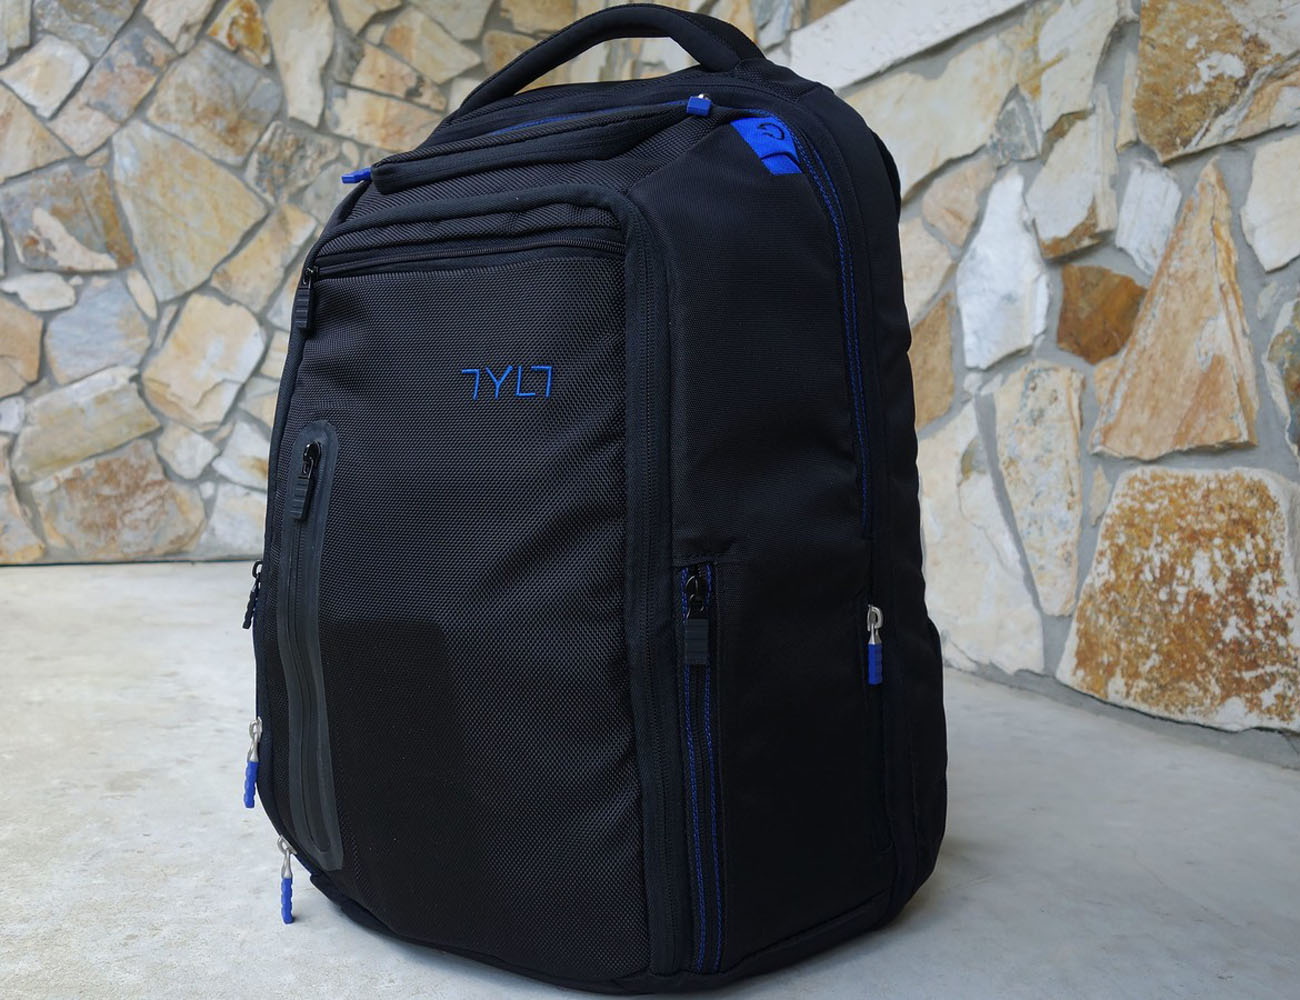 Tylt Energi Backpack + Battery